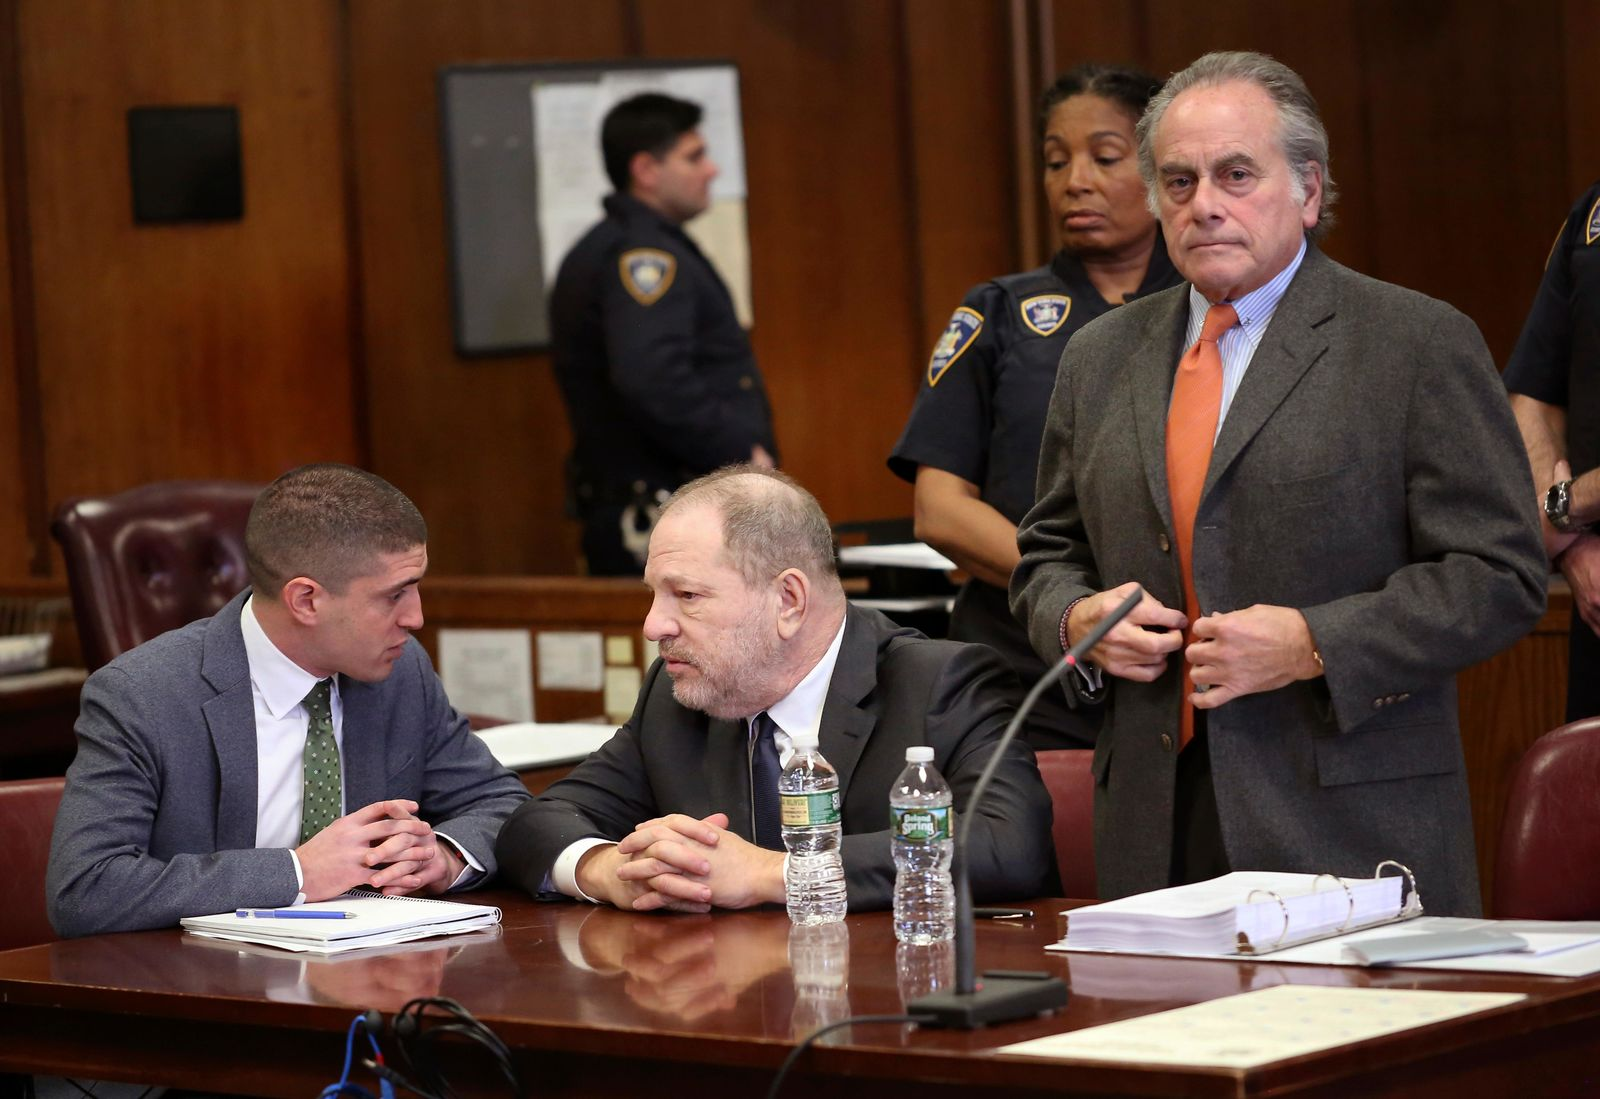 Harvey Weinstein, center, and his attorney Ben Brafman, right, make an appearance in court at New York Supreme Court, Thursday, Dec. 20, 2018, in New York.{ } (Alec Tabak/The Daily News via AP, Pool)